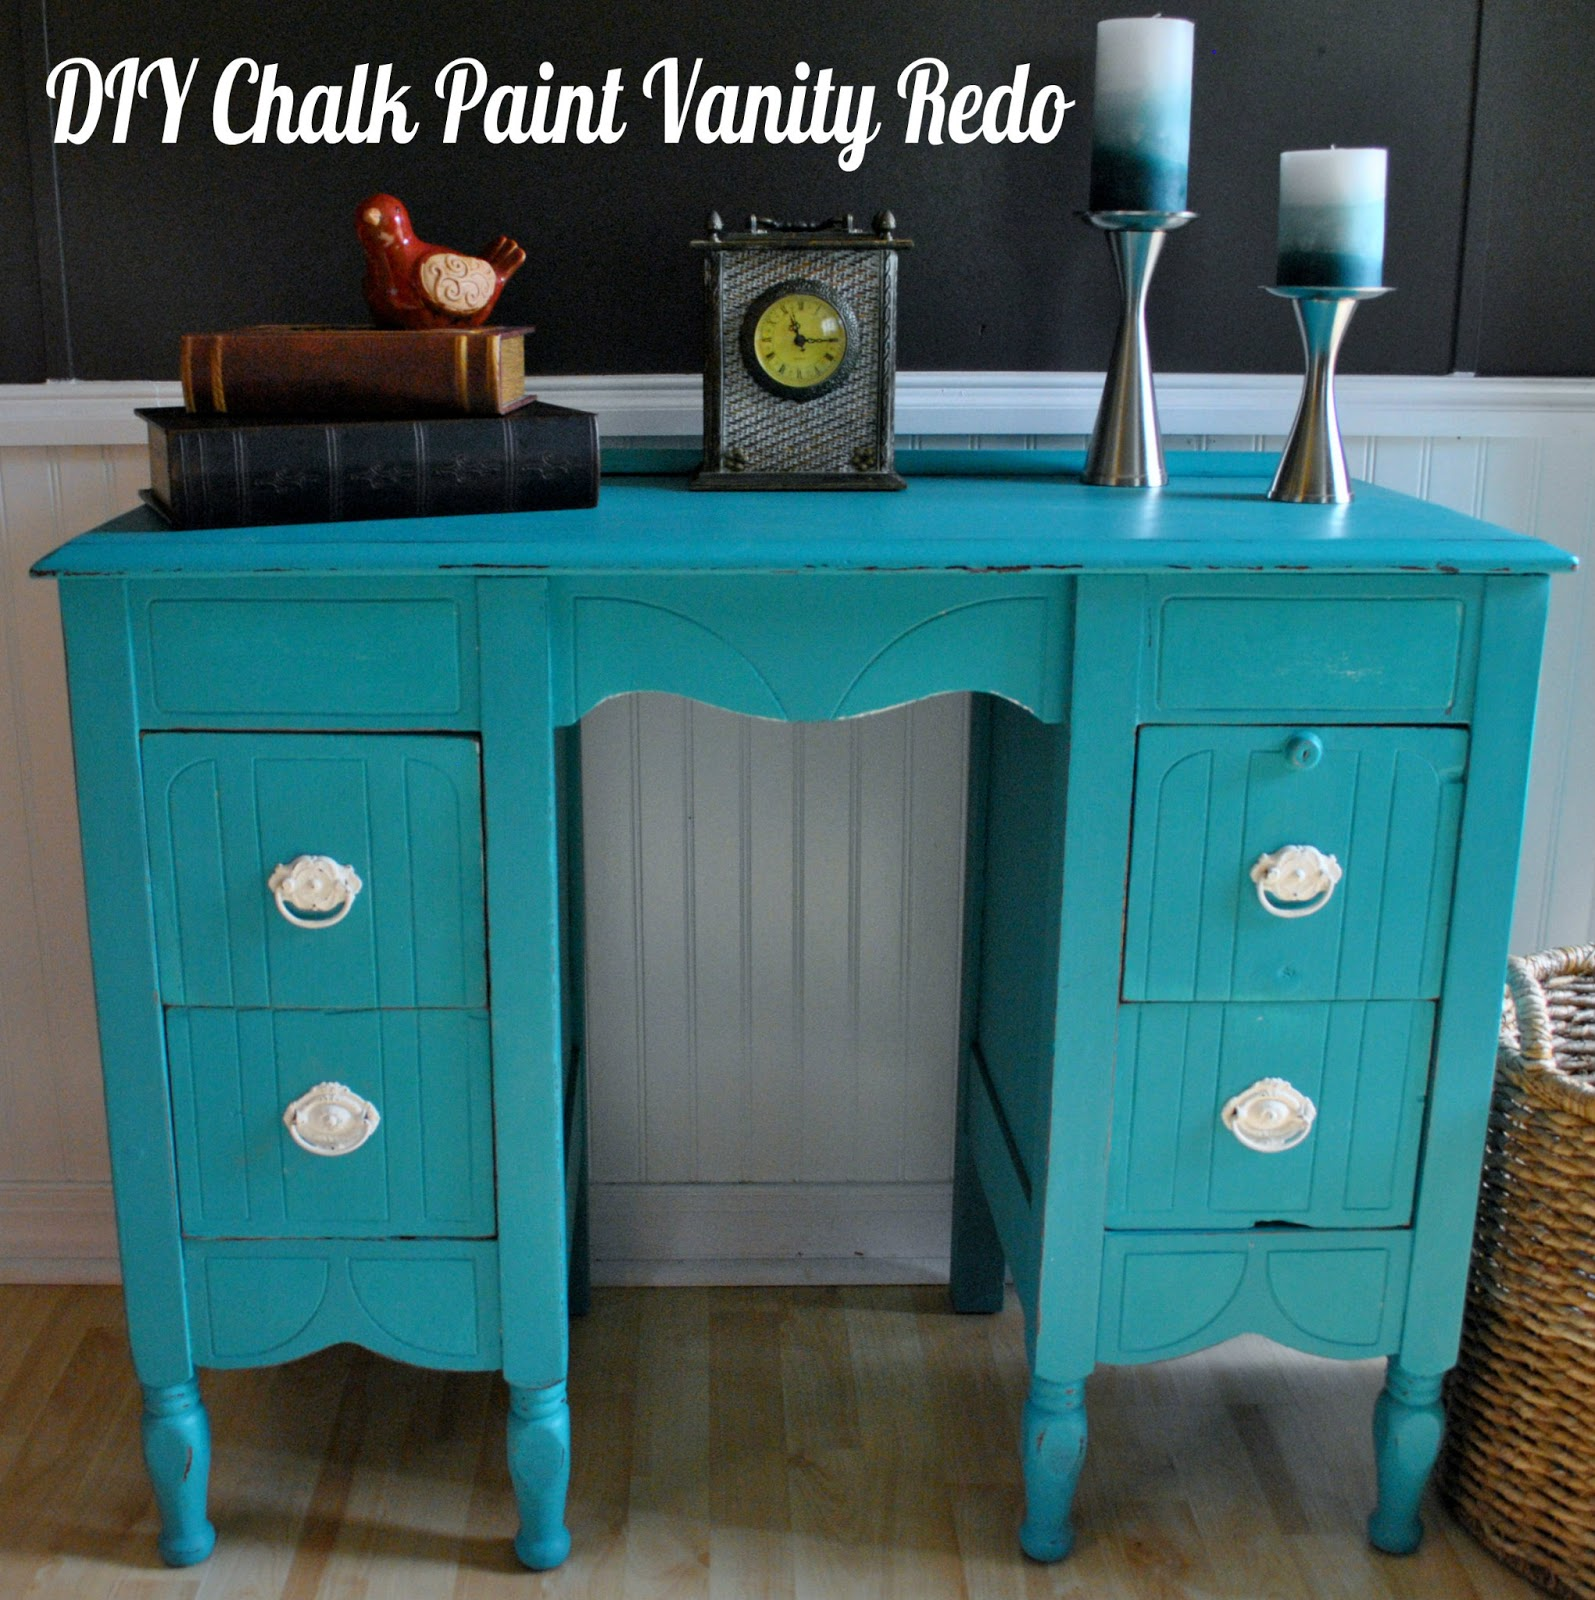 Life With 4 Boys Furniture Painting Diy Chalk Paint Vanity Redo